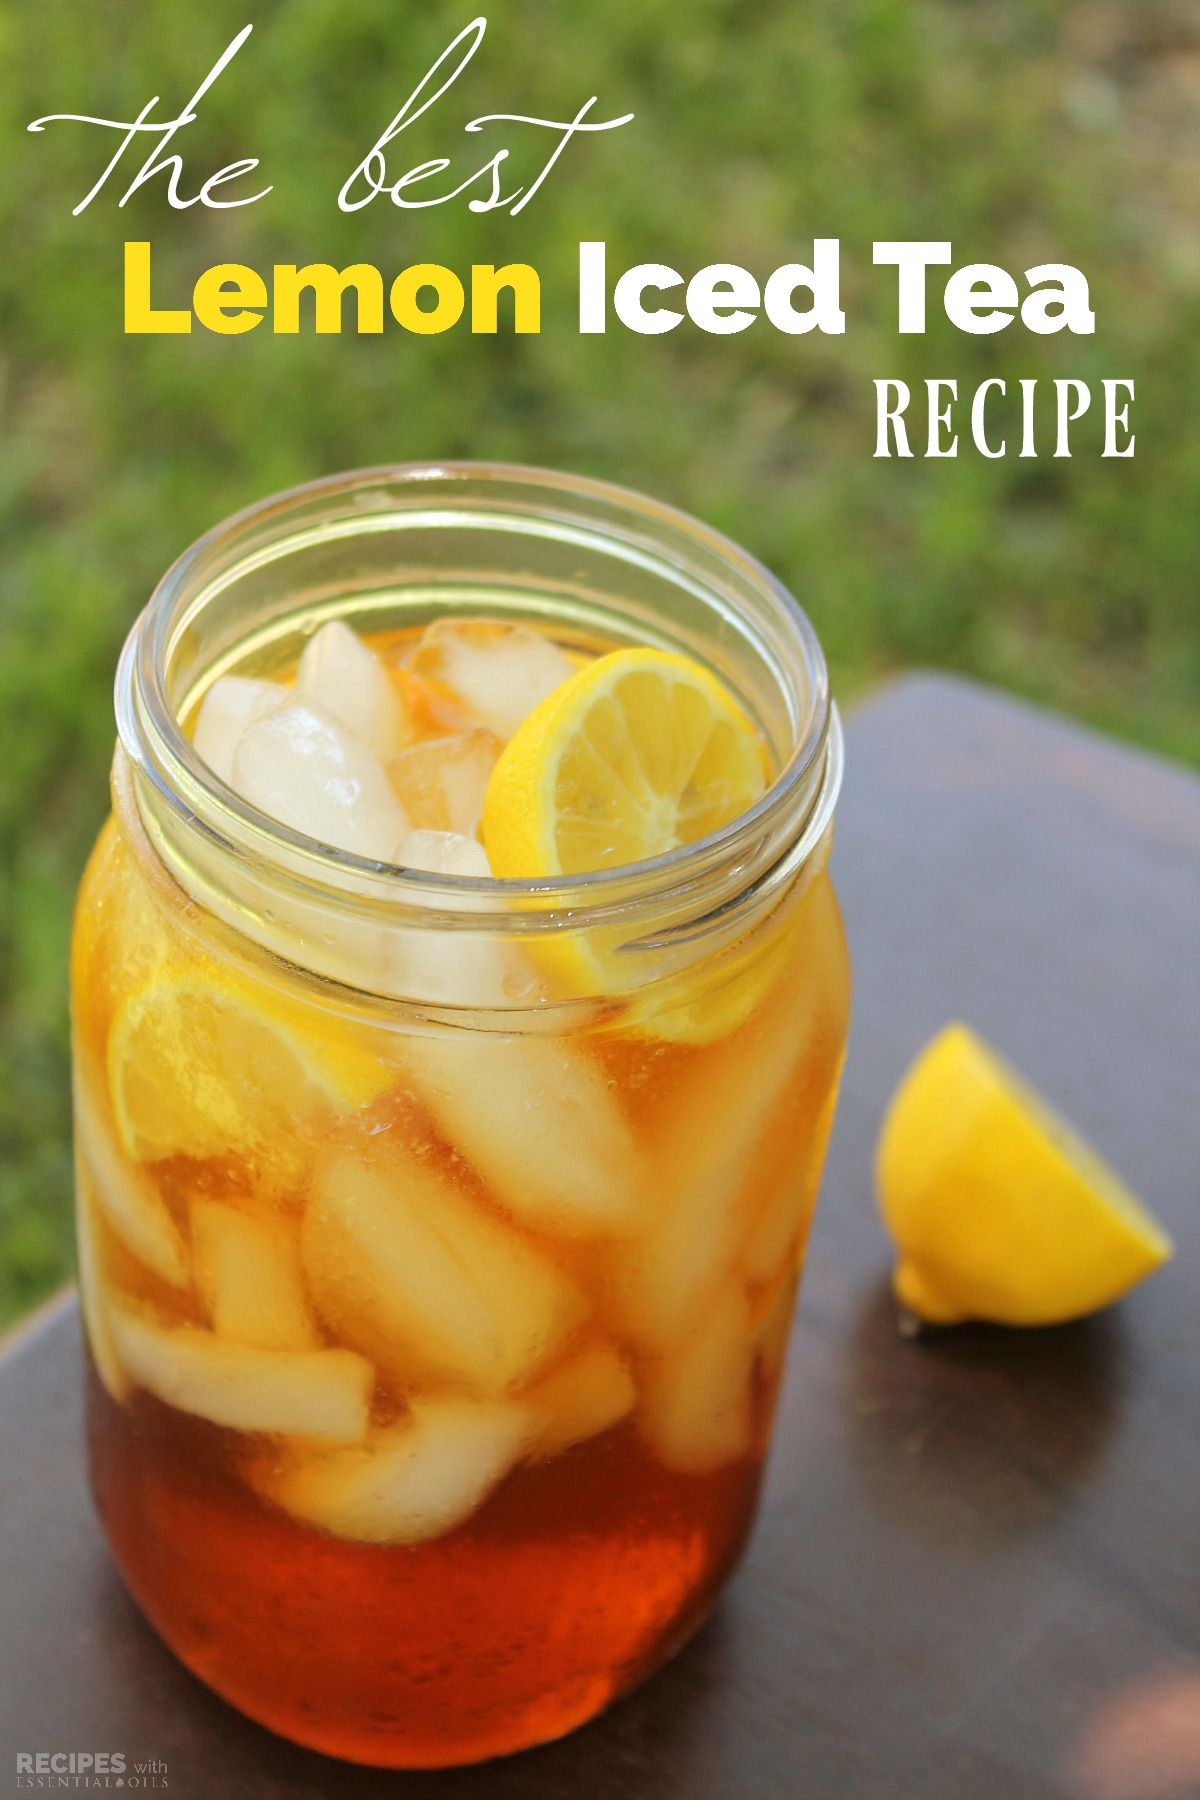 How to Make the BEST Lemon Iced Tea - Recipes with ...